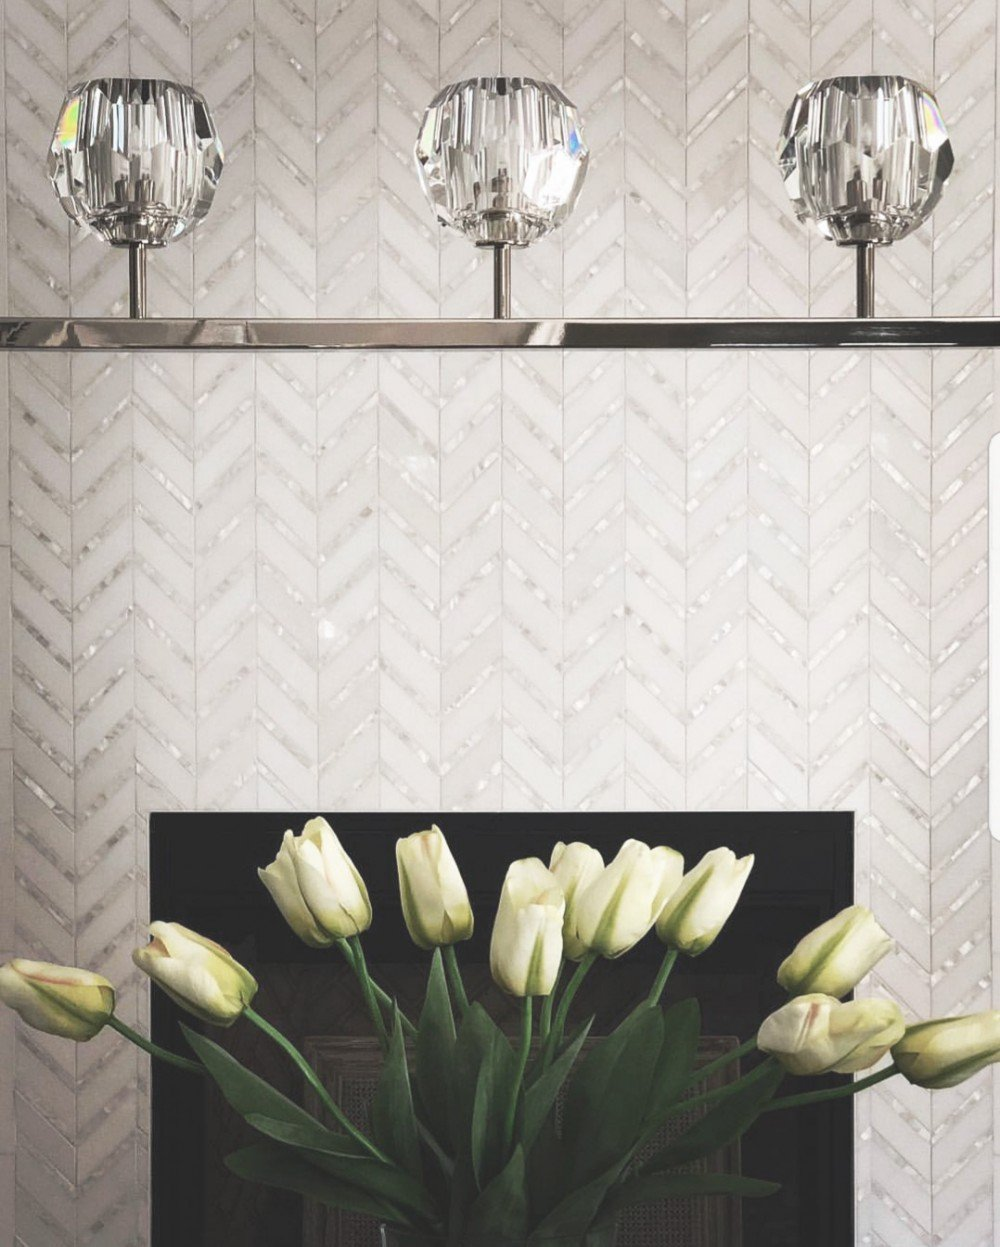 metallic glass tile fireplace surround in chevron pattern